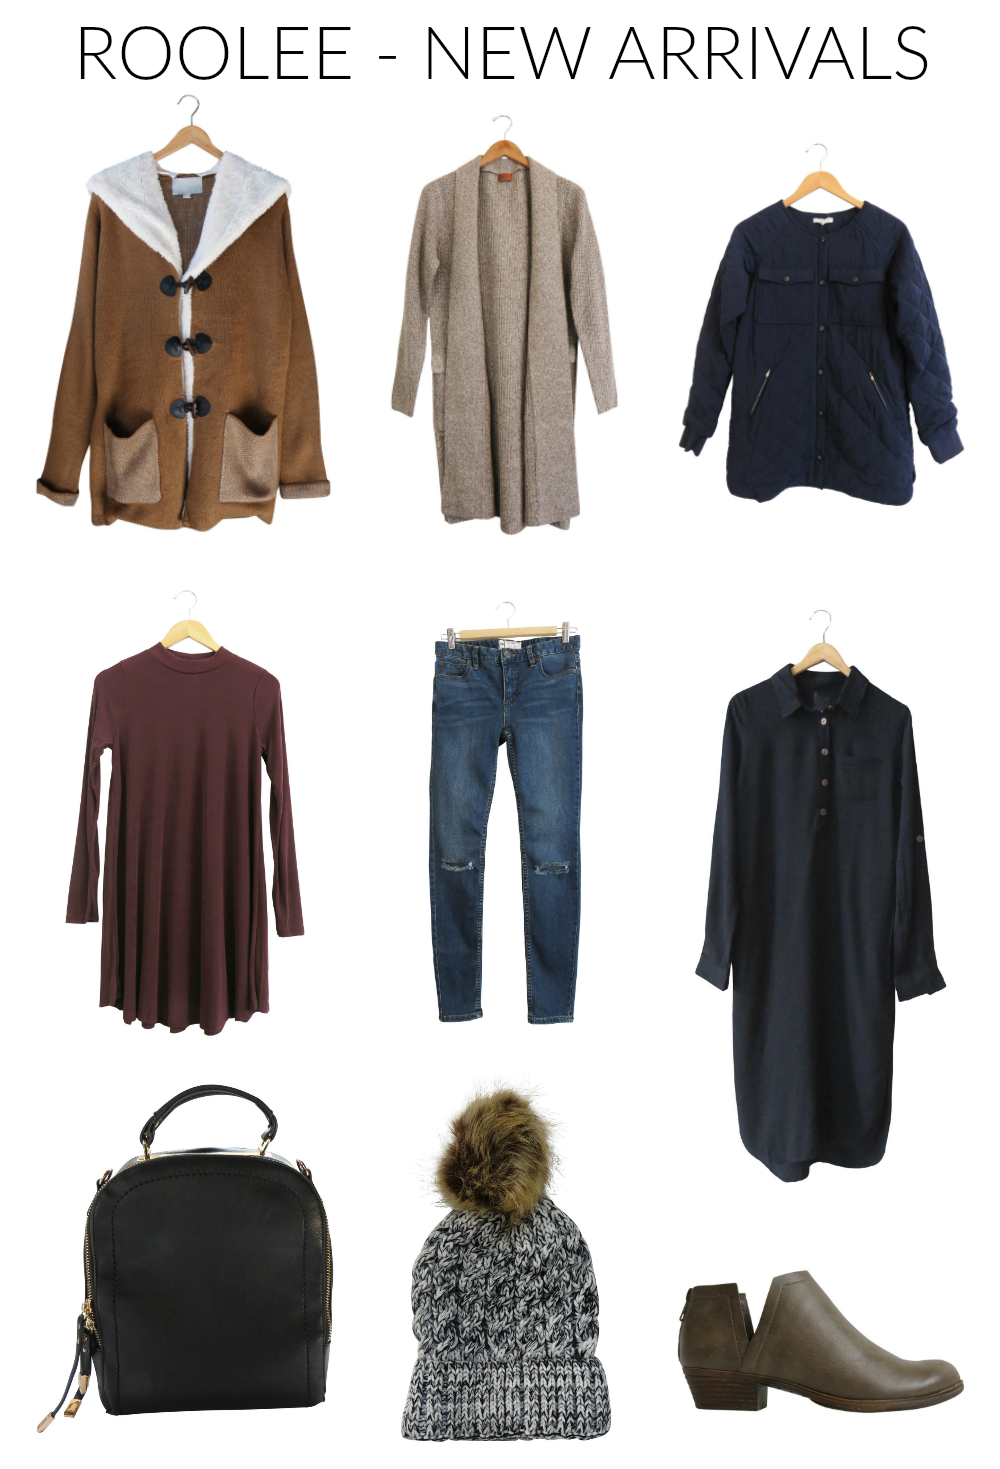 ROOLEE || New arrivals || Favorites || Love, winter, fashion, boutique, logan, utah, cute